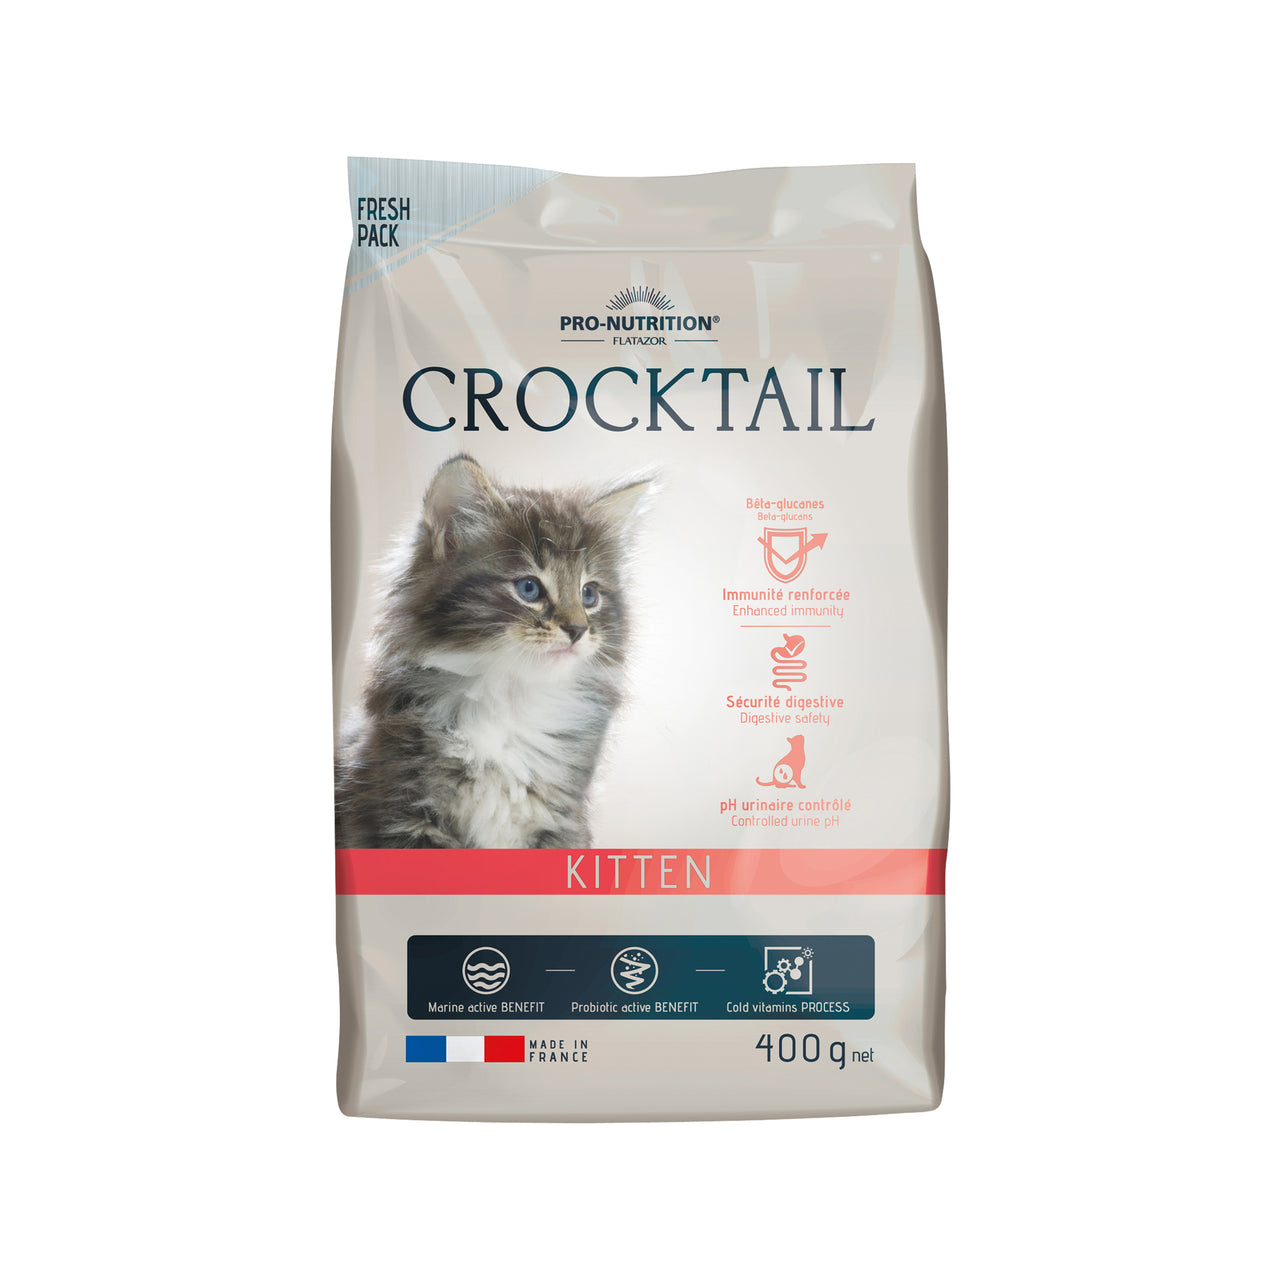 Crocktail Kitten 400 gram